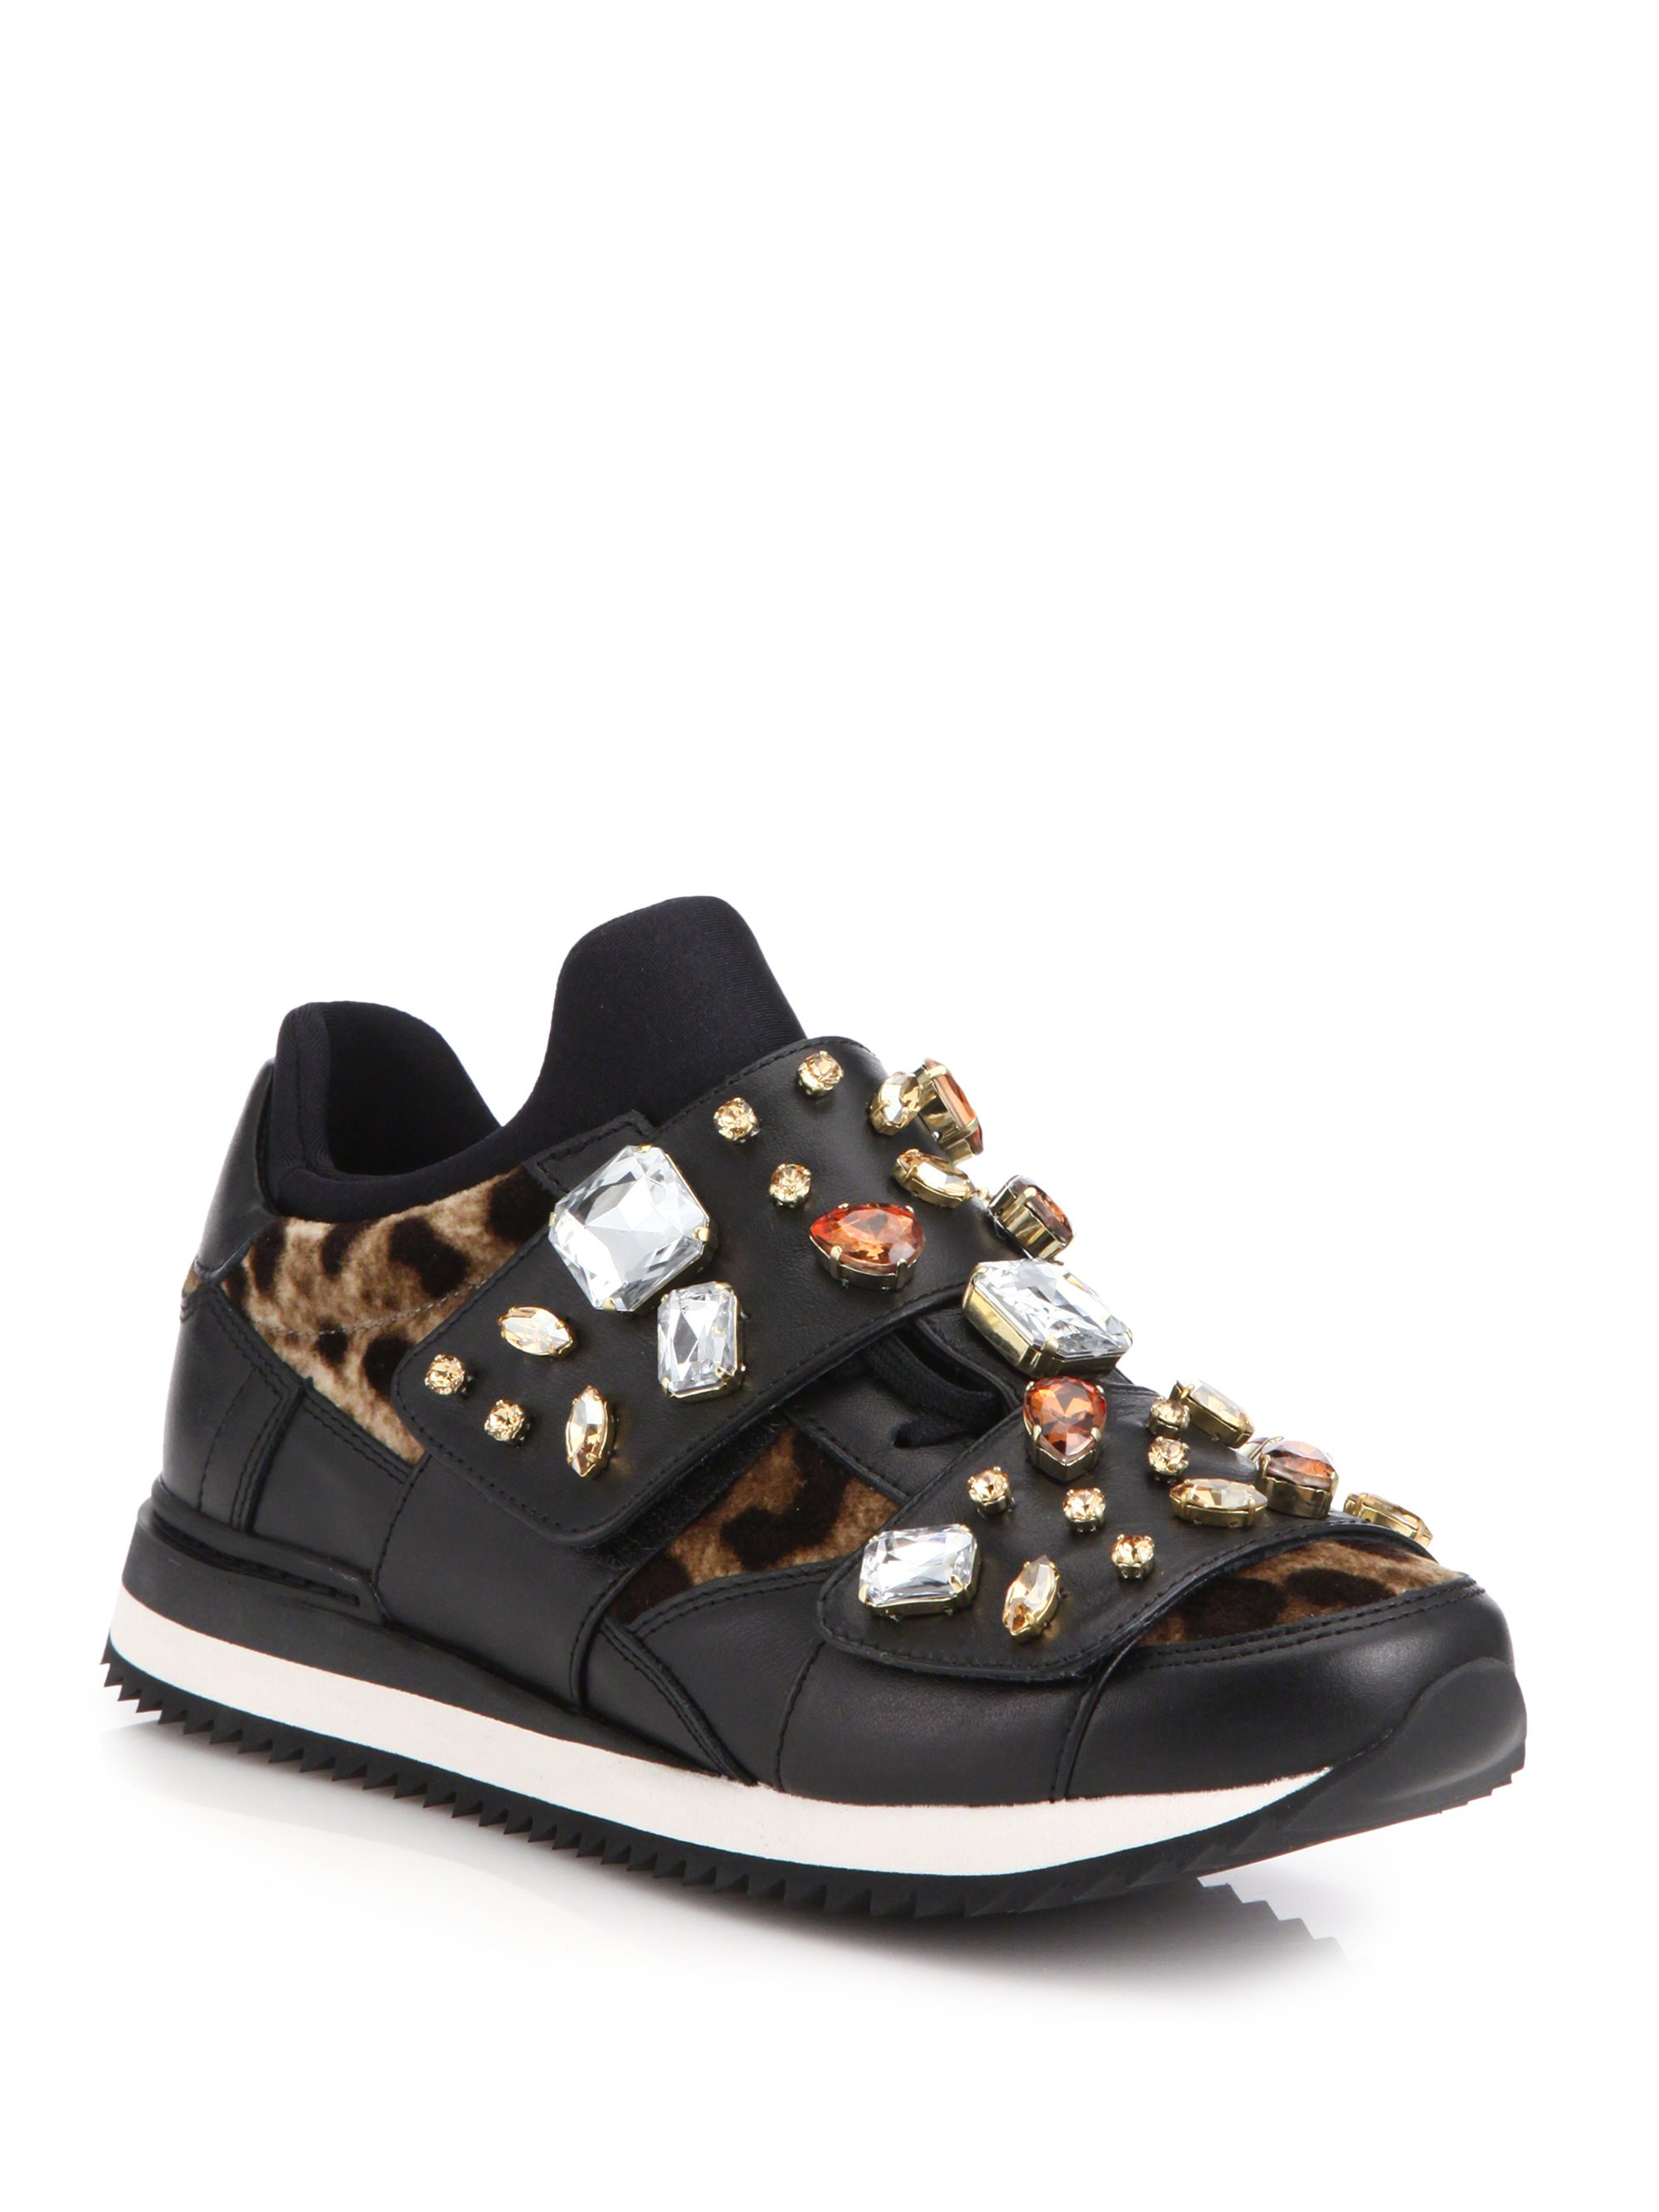 leopard lace-up sneakers - Black Dolce & Gabbana Ap9Ias4Xqc